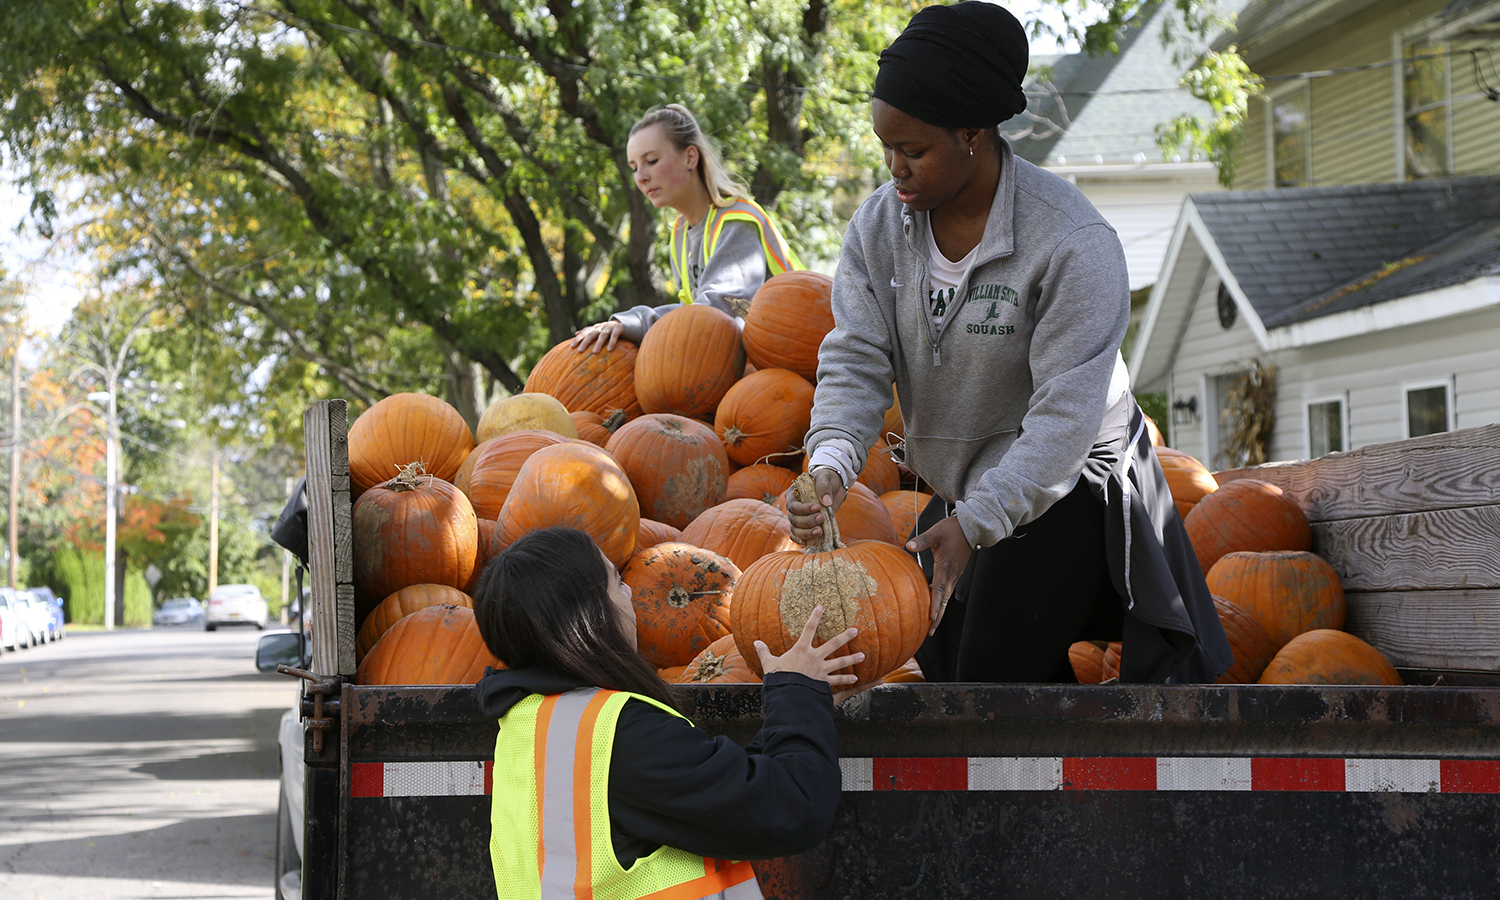 Djenebo Ballo '21 helps unload pumpkins in preparation for the 6th Annual Hildreth Hill Pumpkin Roll in Geneva, N.Y.